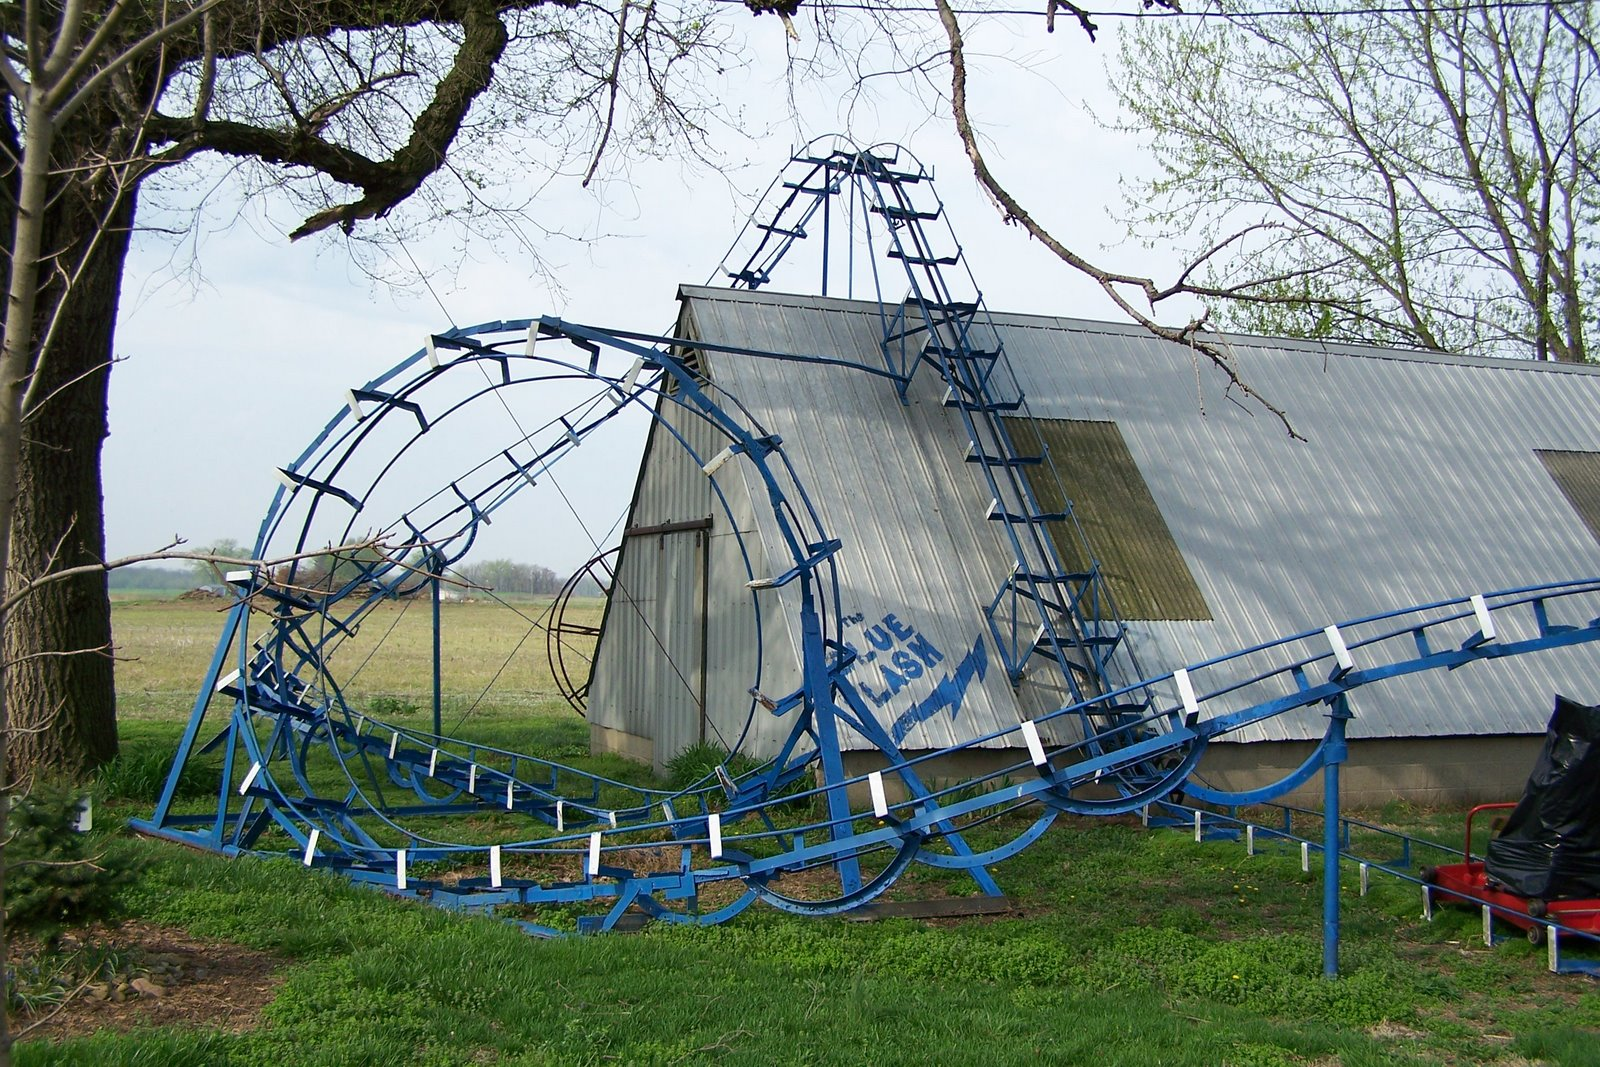 Big Roller Coaster In Backyard :  miniature, fully operational roller coaster in a man?s back yard